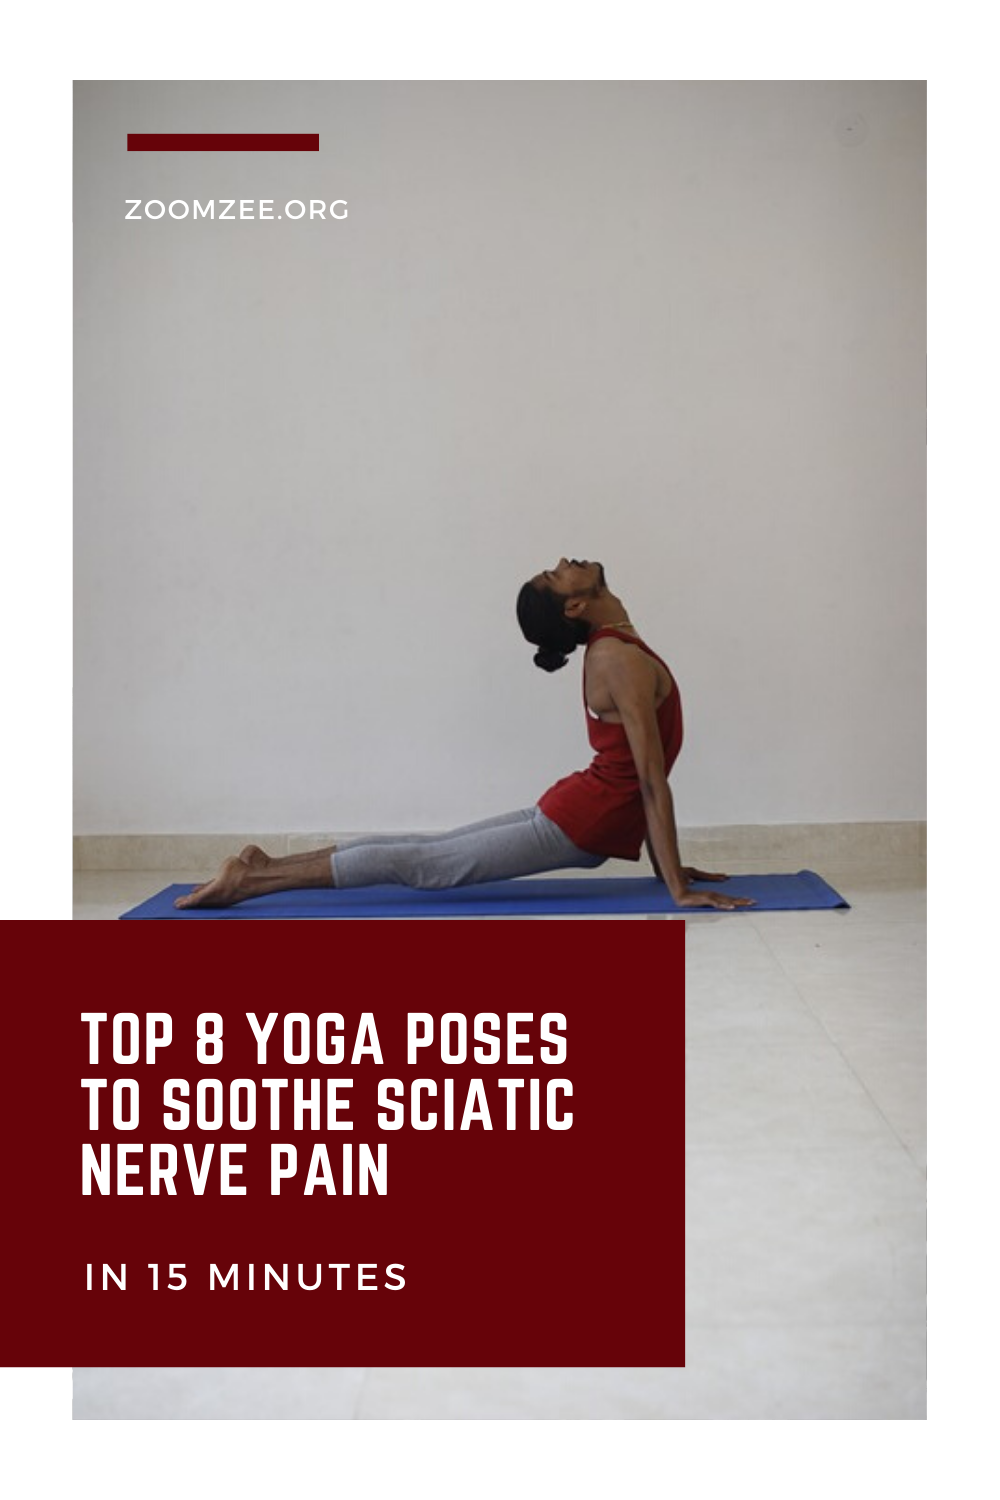 Top 8 Yoga Poses To Soothe Sciatic Nerve Pain In 15 ...